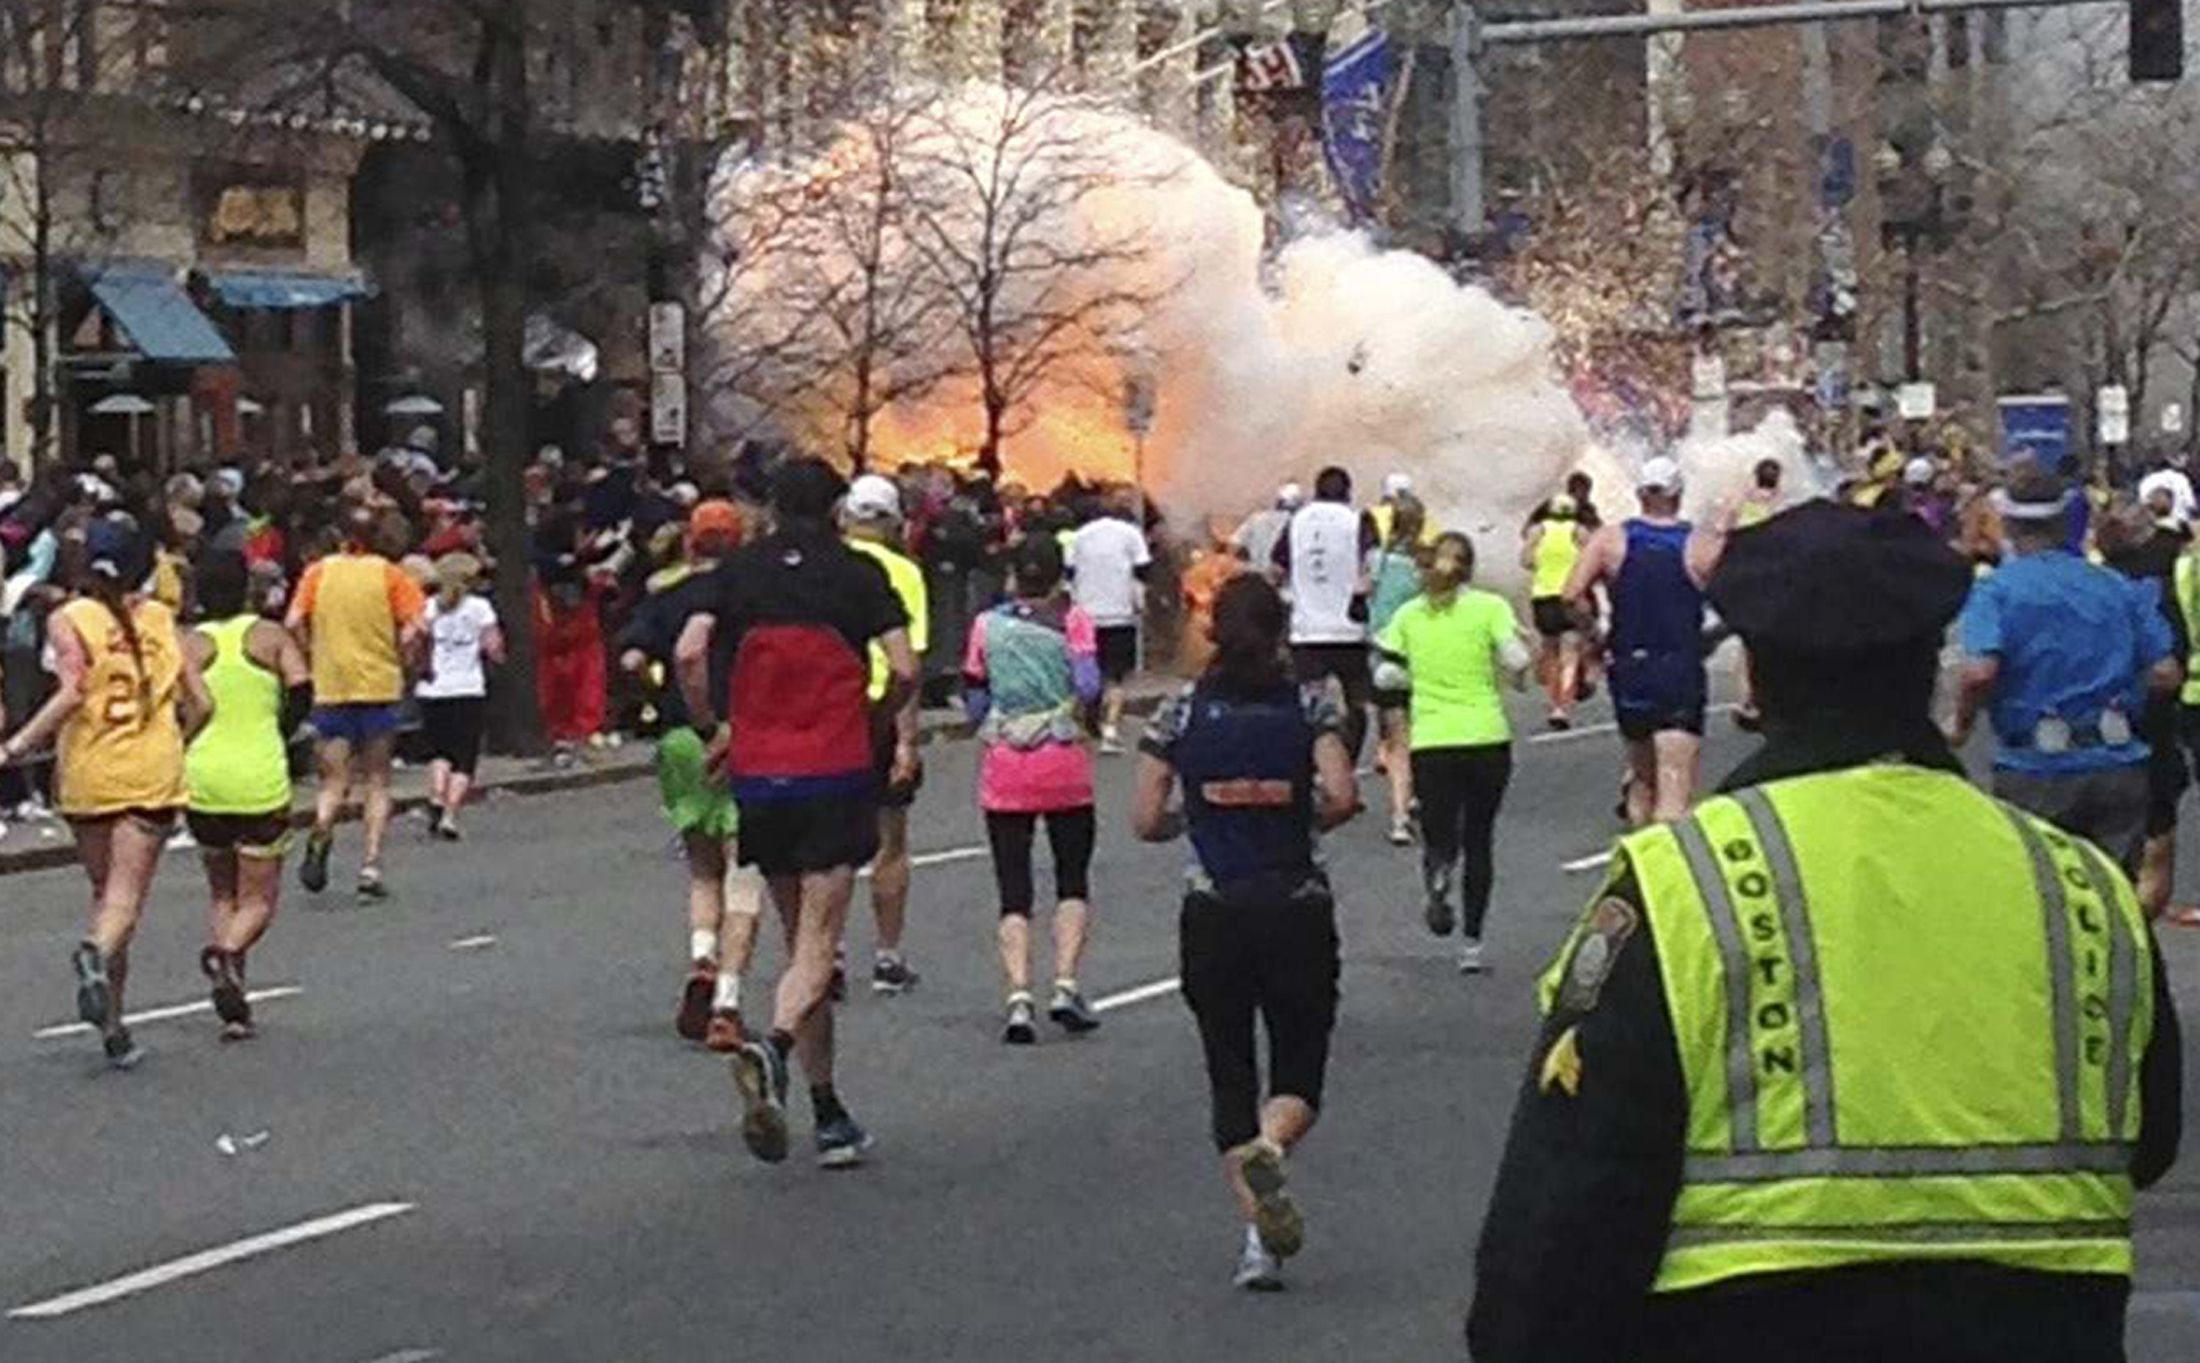 4-14-15 Boston bombing